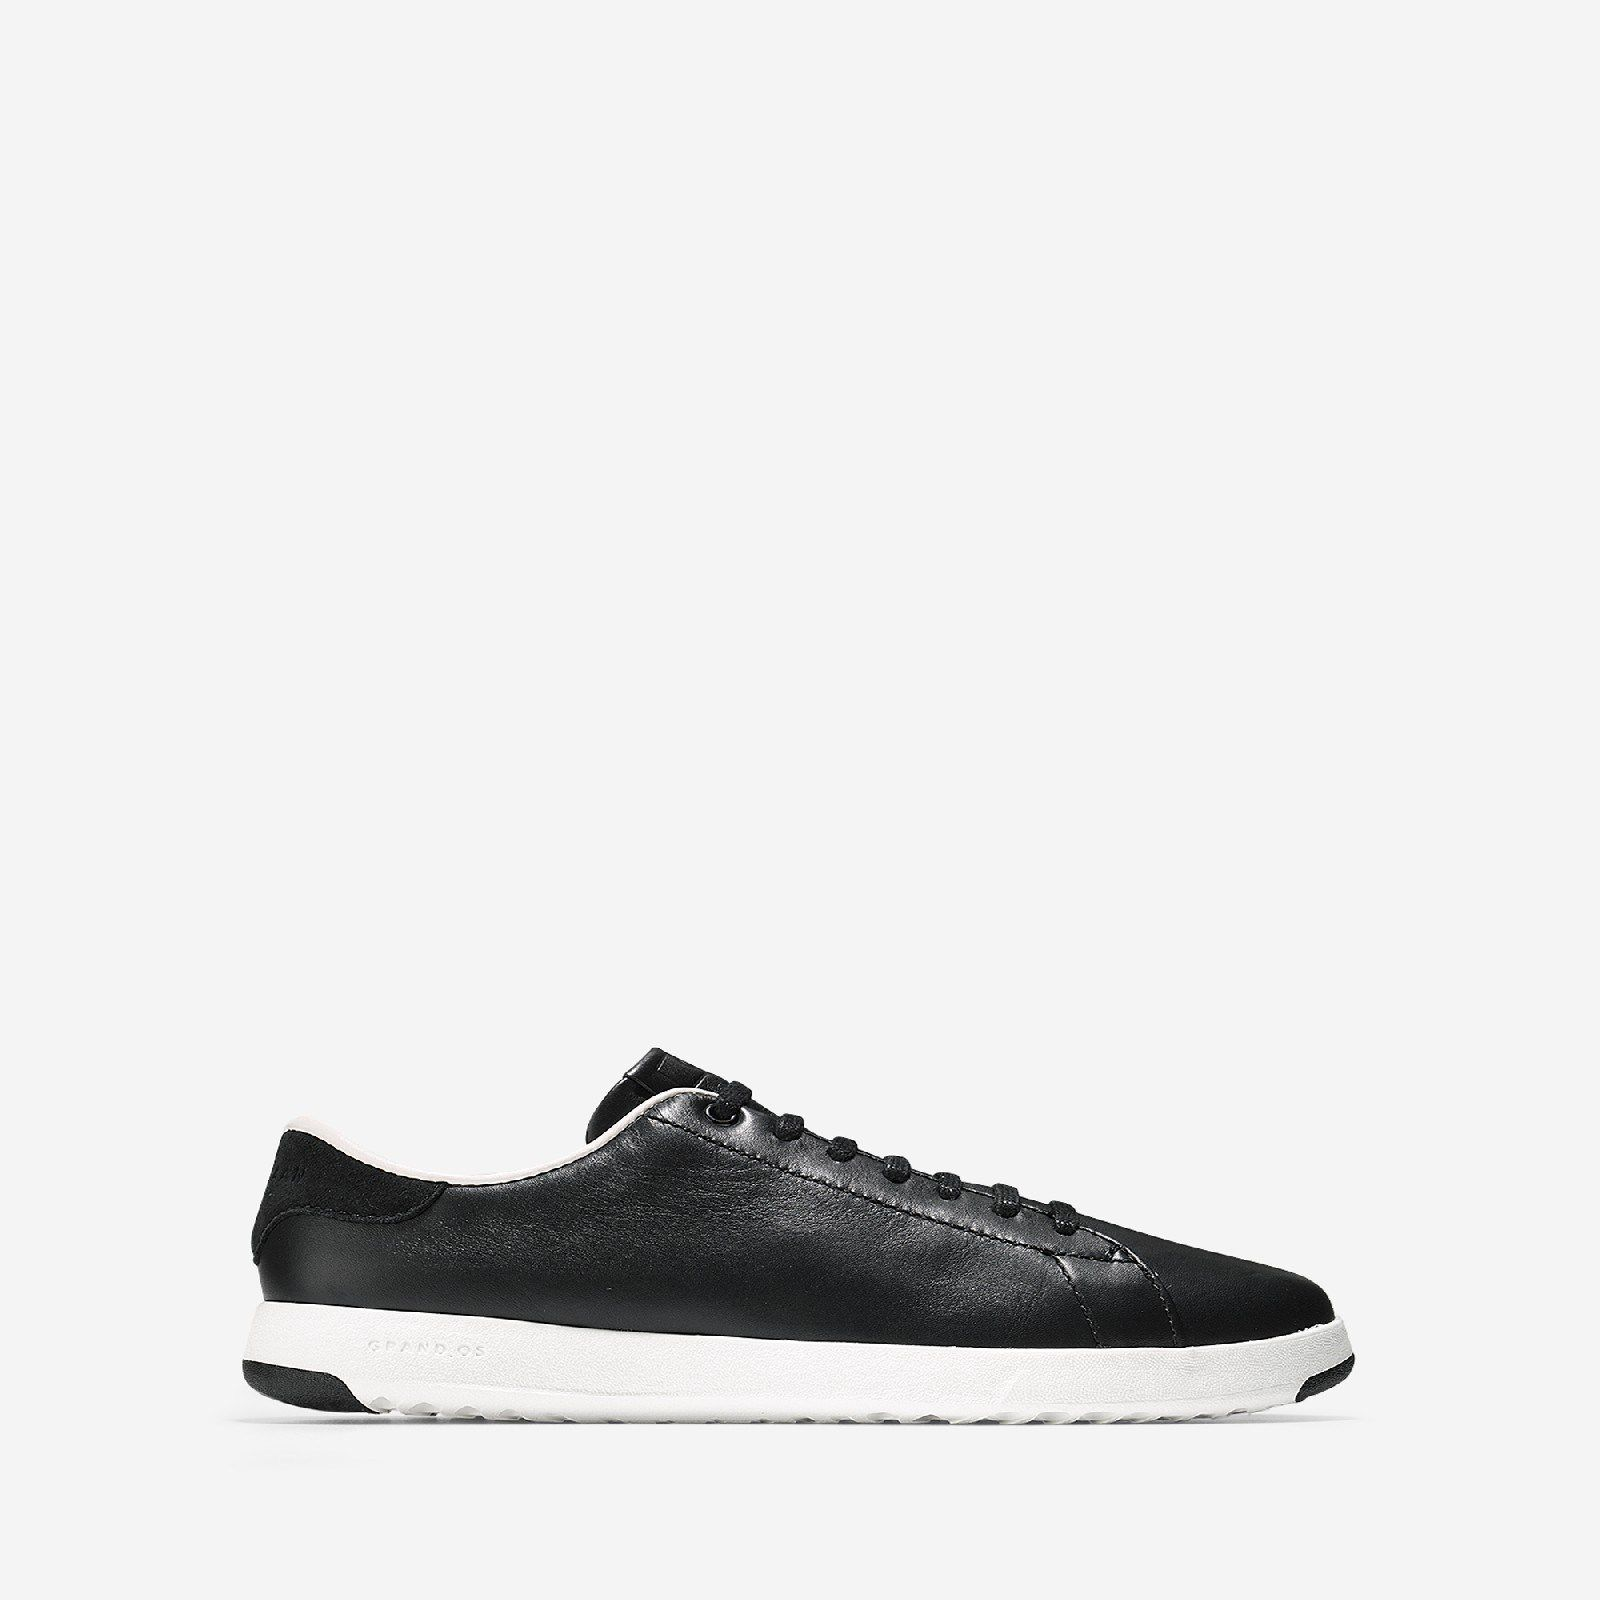 Cole Haan GrandPro Tennis, Black